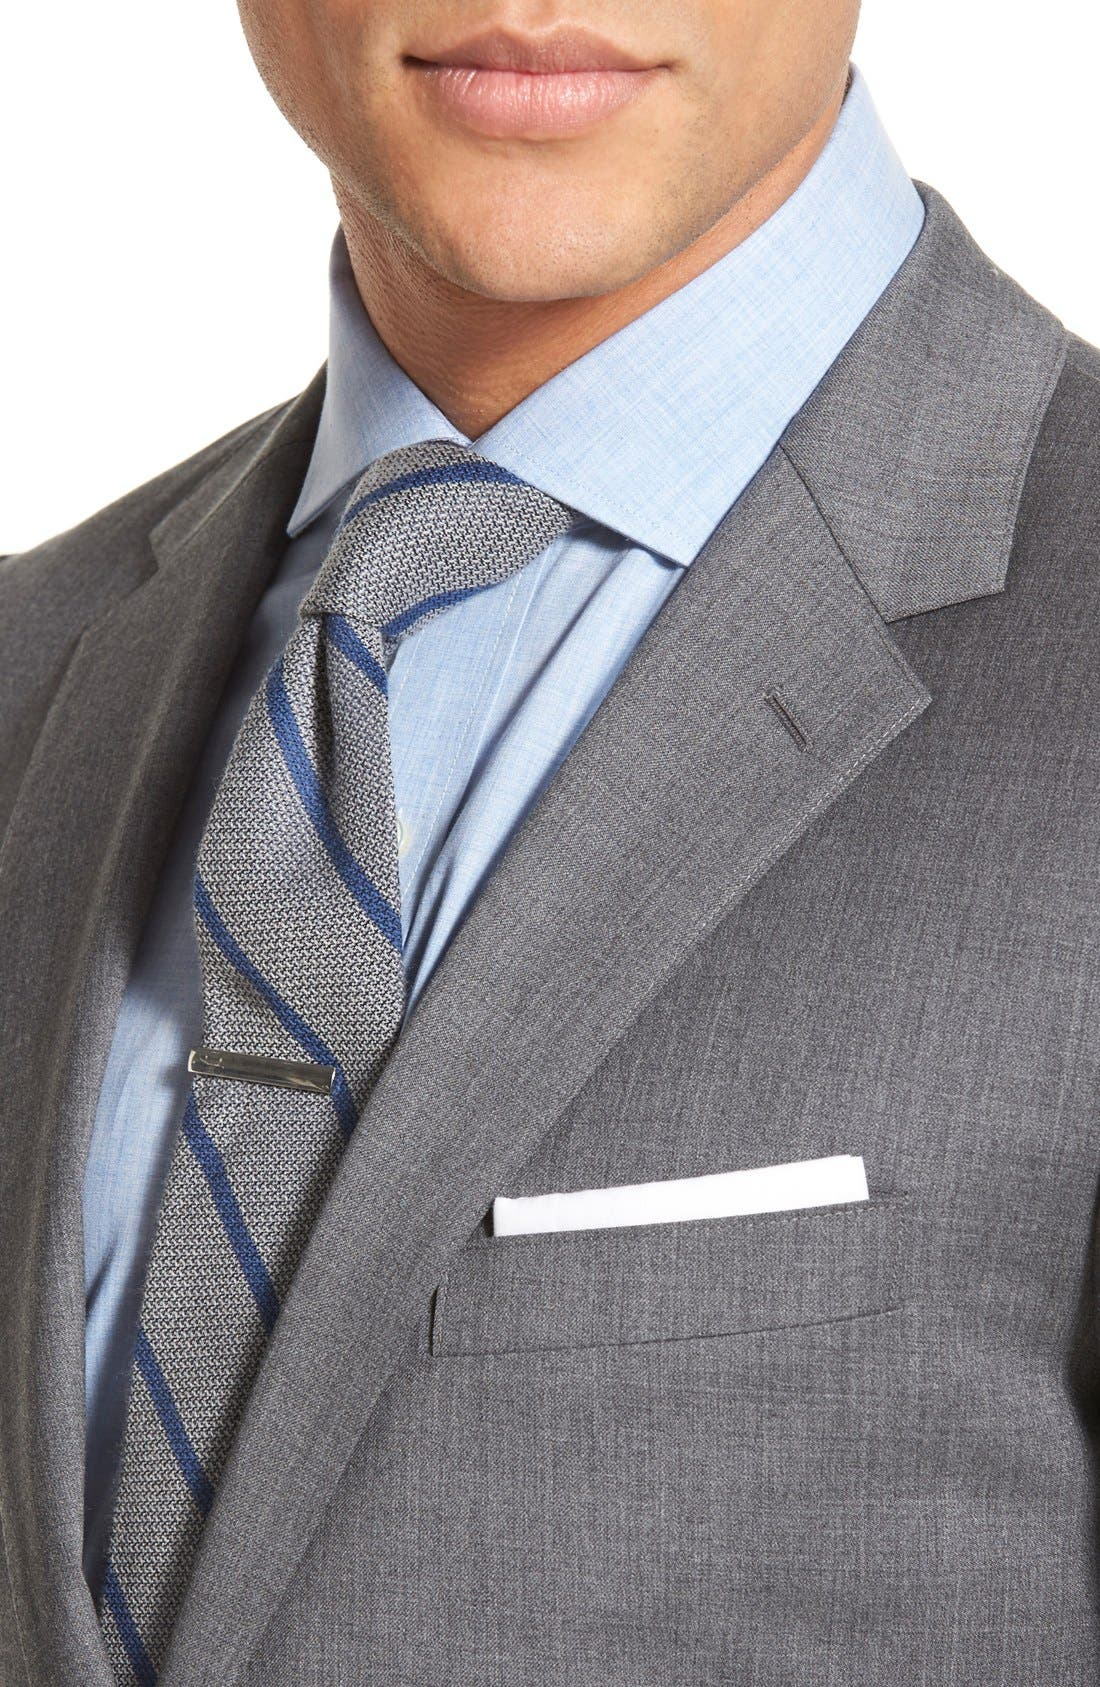 Trim Fit Solid Stretch Wool Sport Coat,                             Alternate thumbnail 5, color,